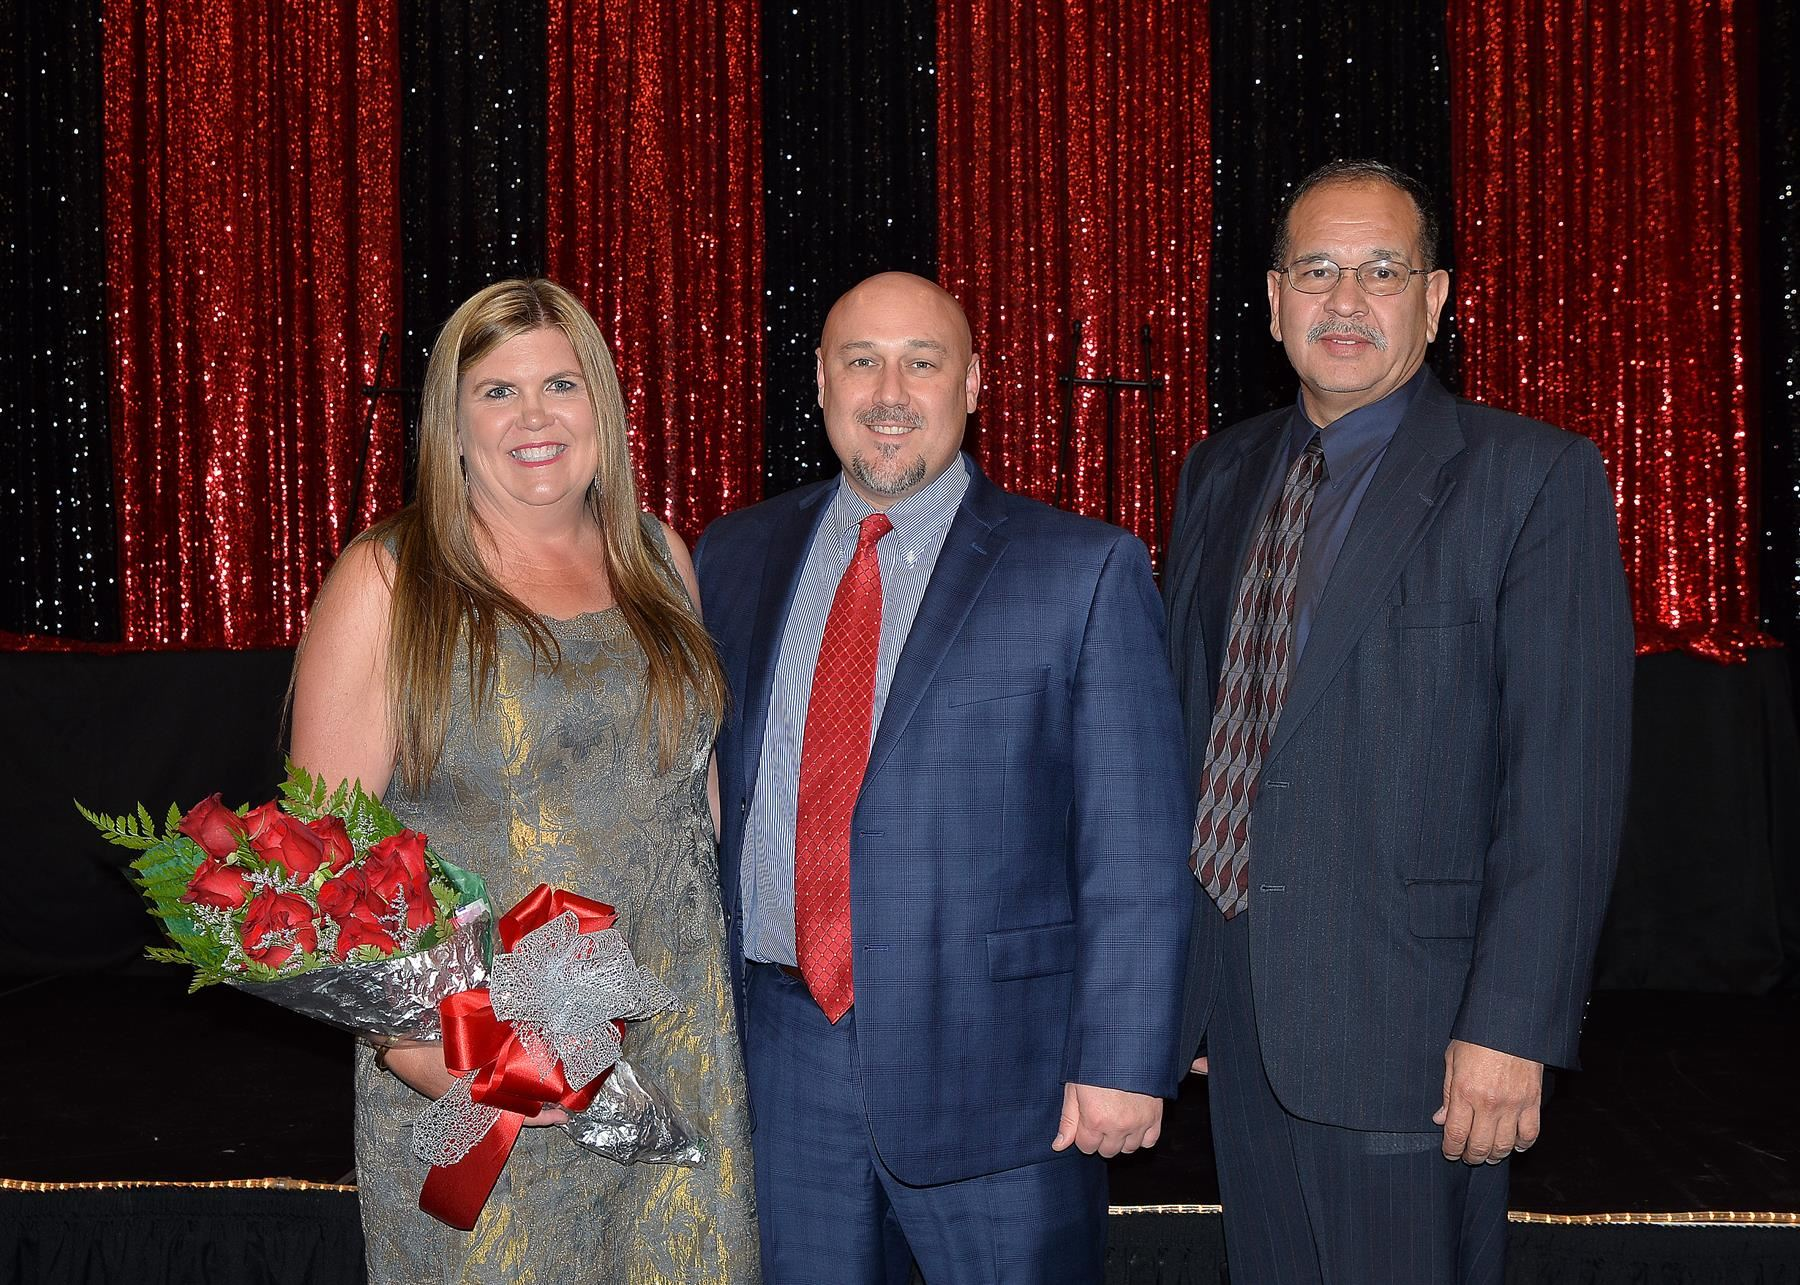 Principal Bitter MUSD Administrator of the Year